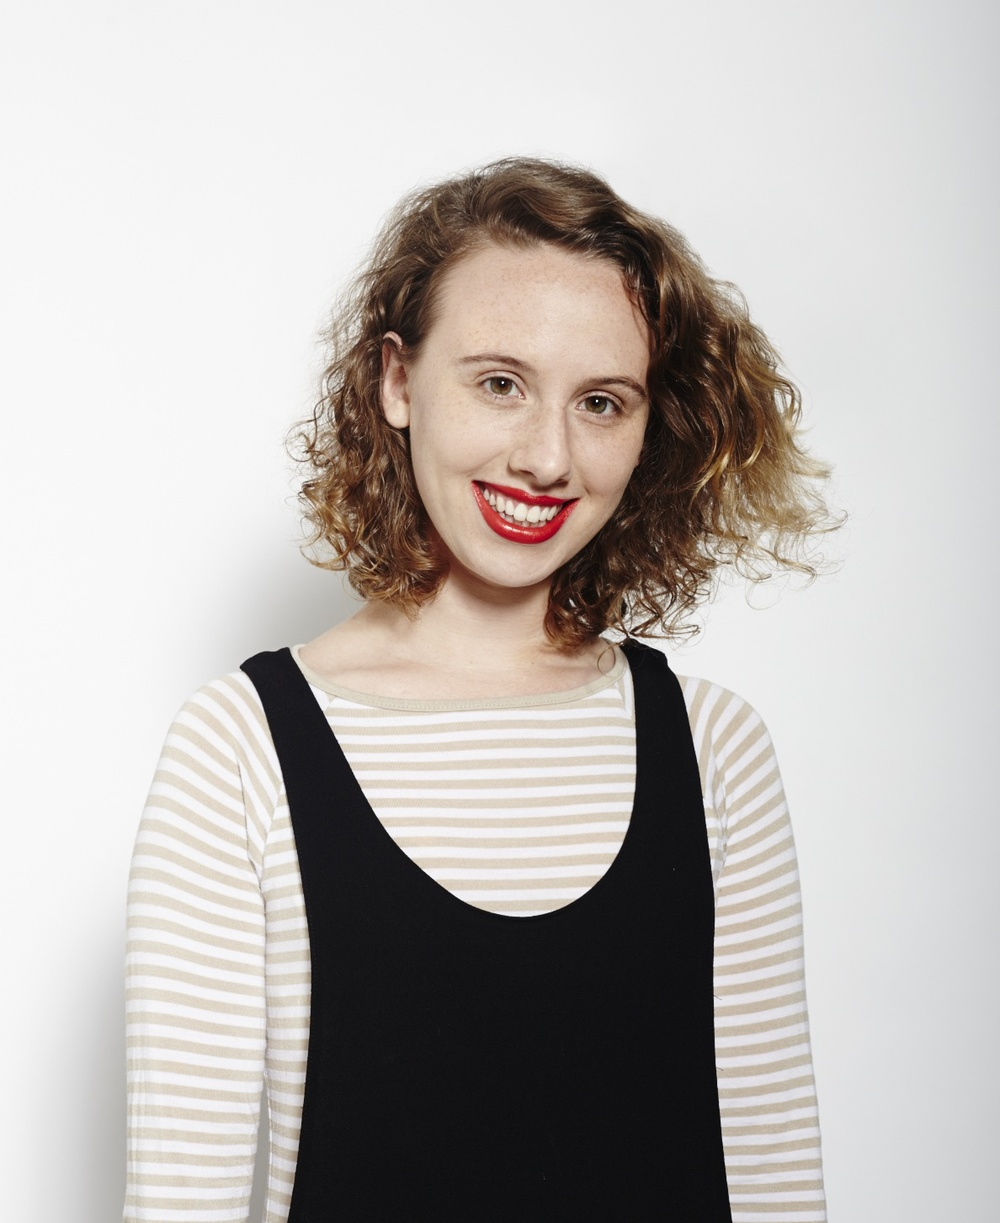 Lexi Nisita is a News Editor, writer, and manager of all things social media at  Refinery29 . Lexi is credited with growing Refinery29's social channels significantly since joining Refinery29 in 2012.